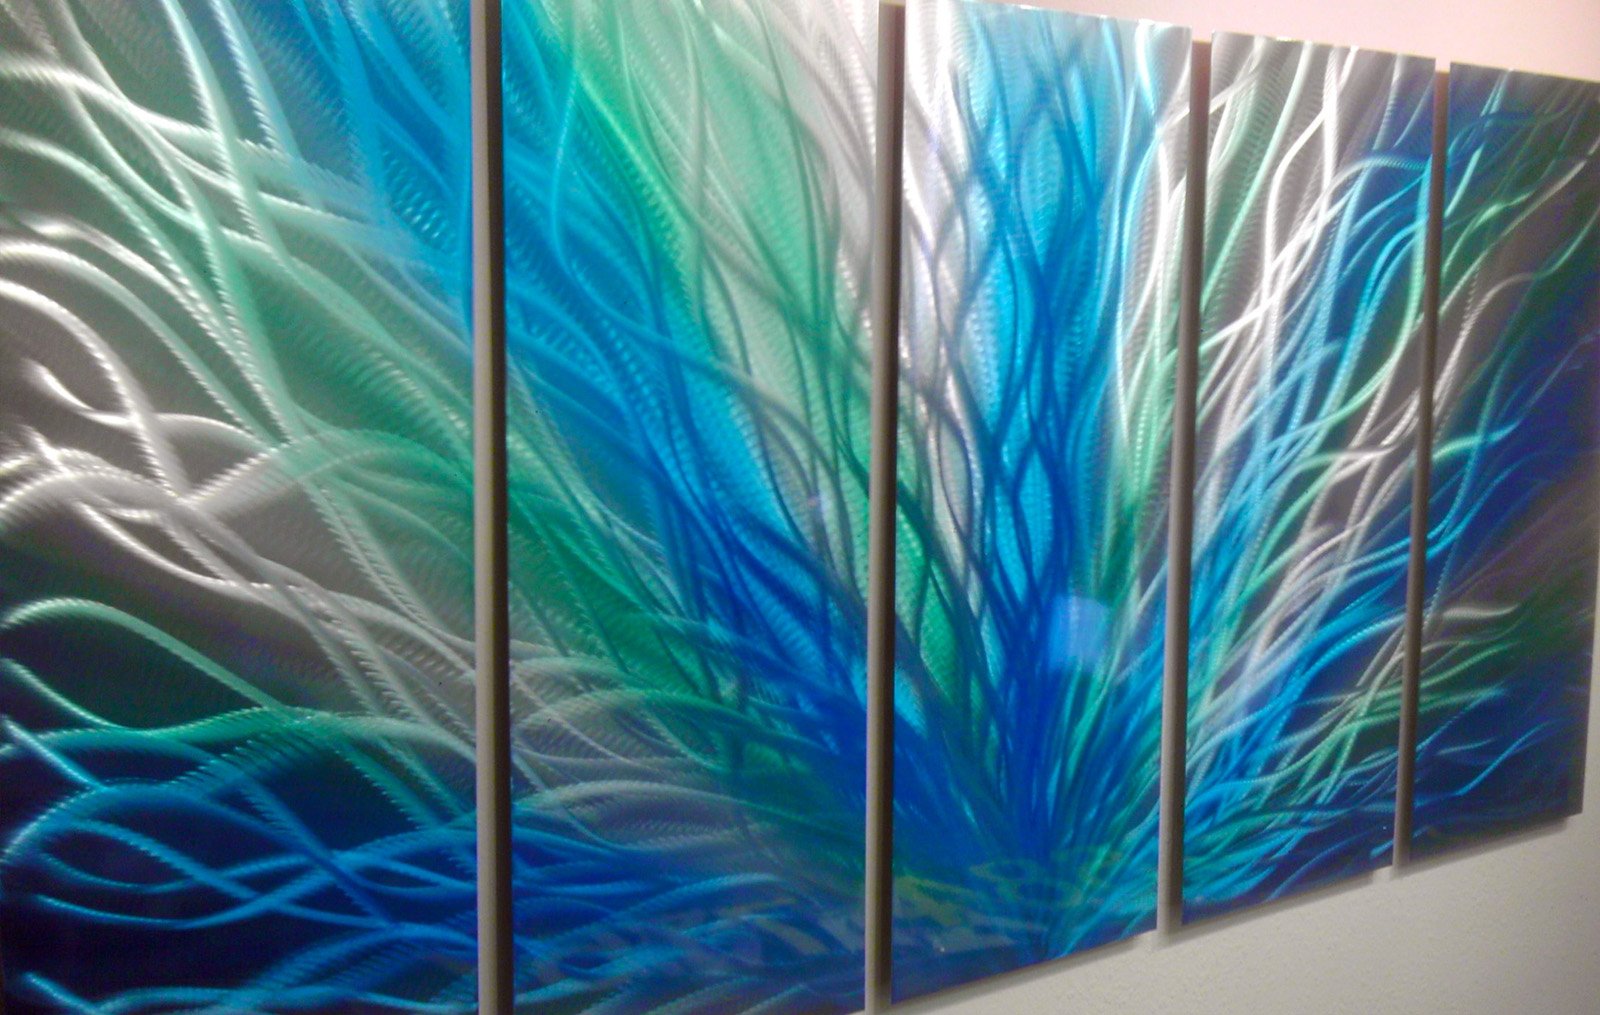 Blue Metal Wall Art Impressive Radiance Large Green Blue Metal Wall Art Contemporary Modern Design Ideas